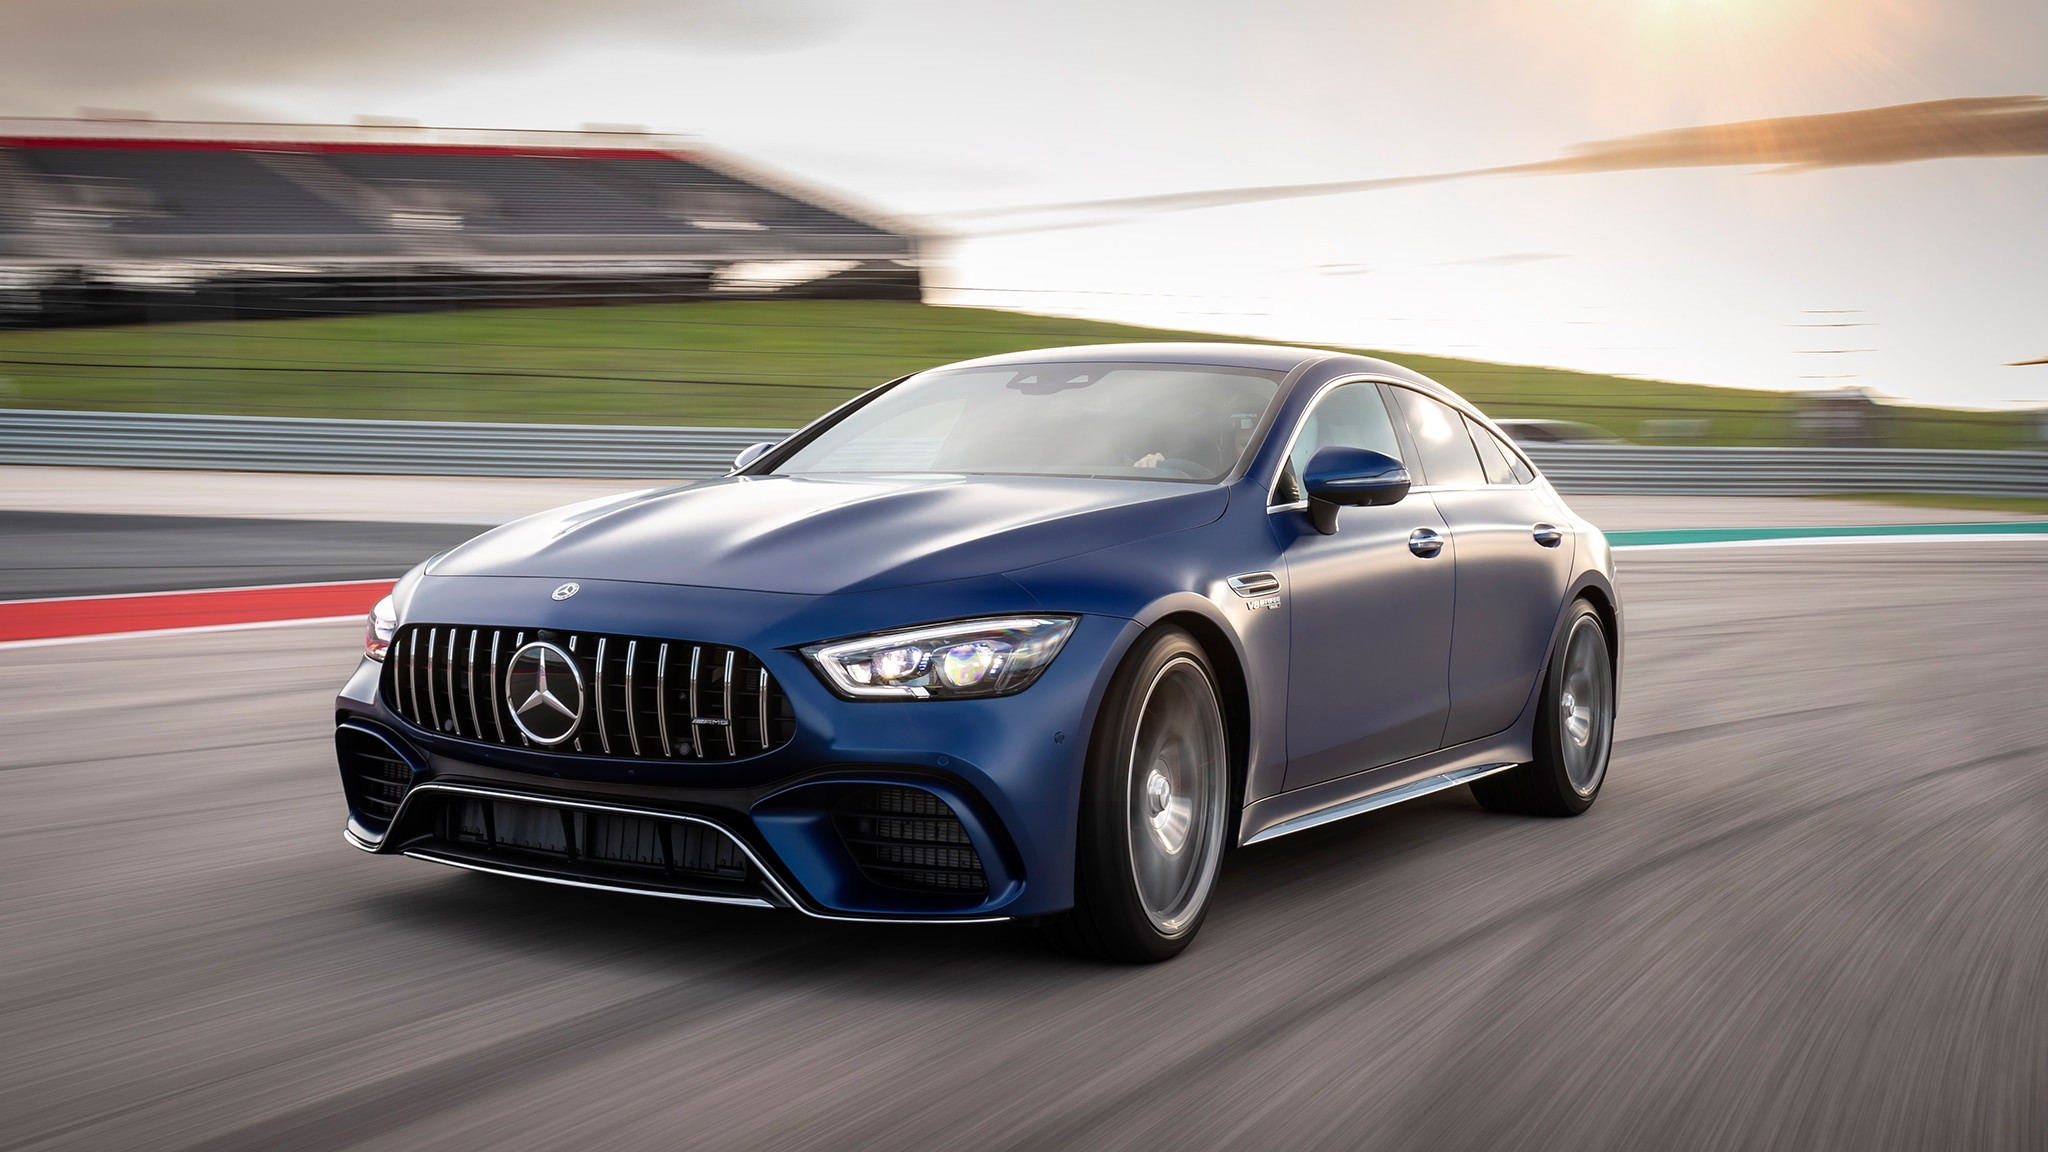 2019 Mercedes Amg Gt 4 Door First Drive Review Automobile Magazine